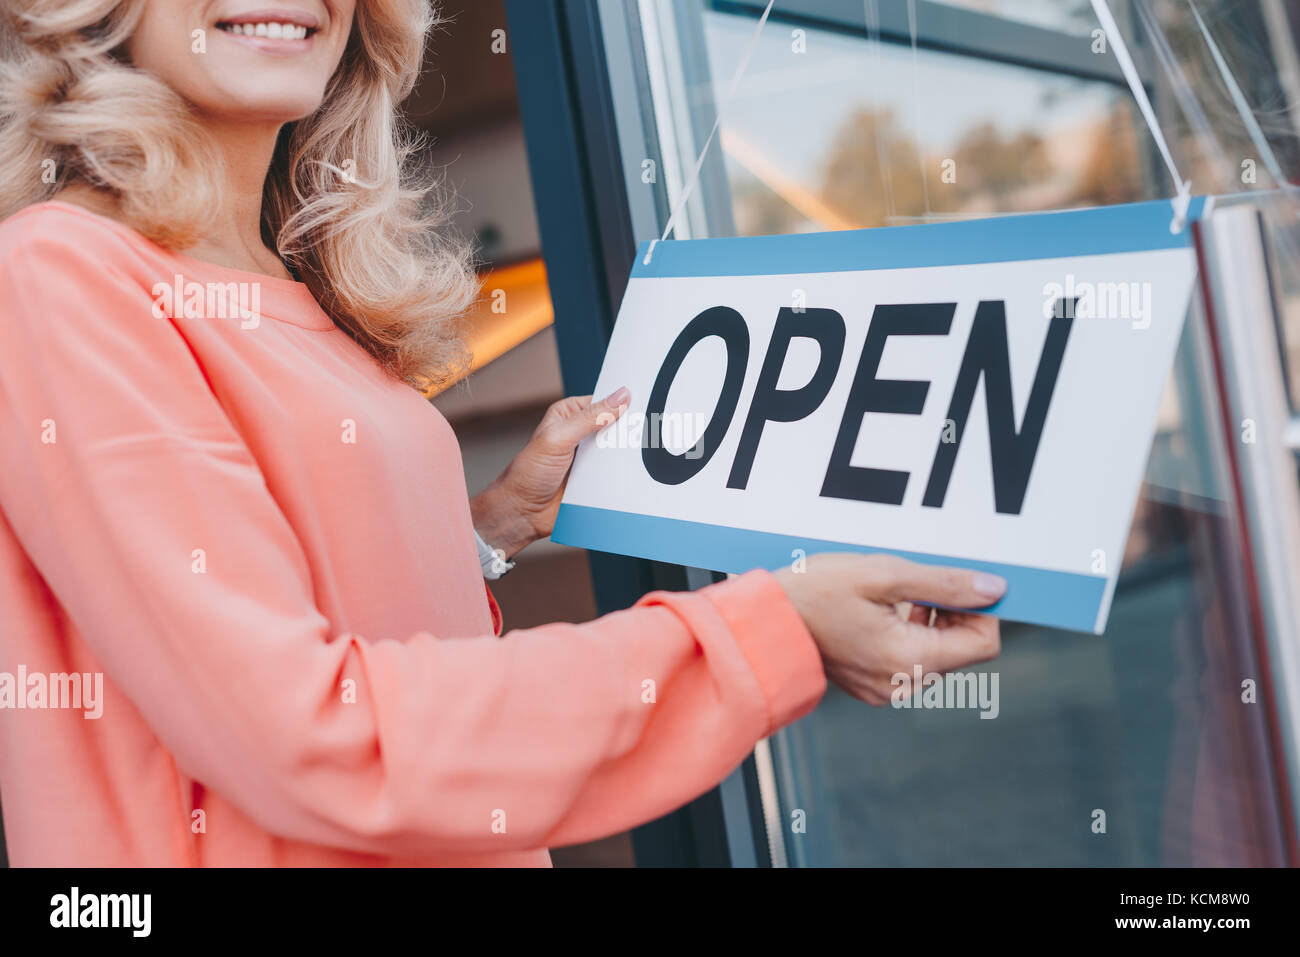 cafe owner with sign open  - Stock Image